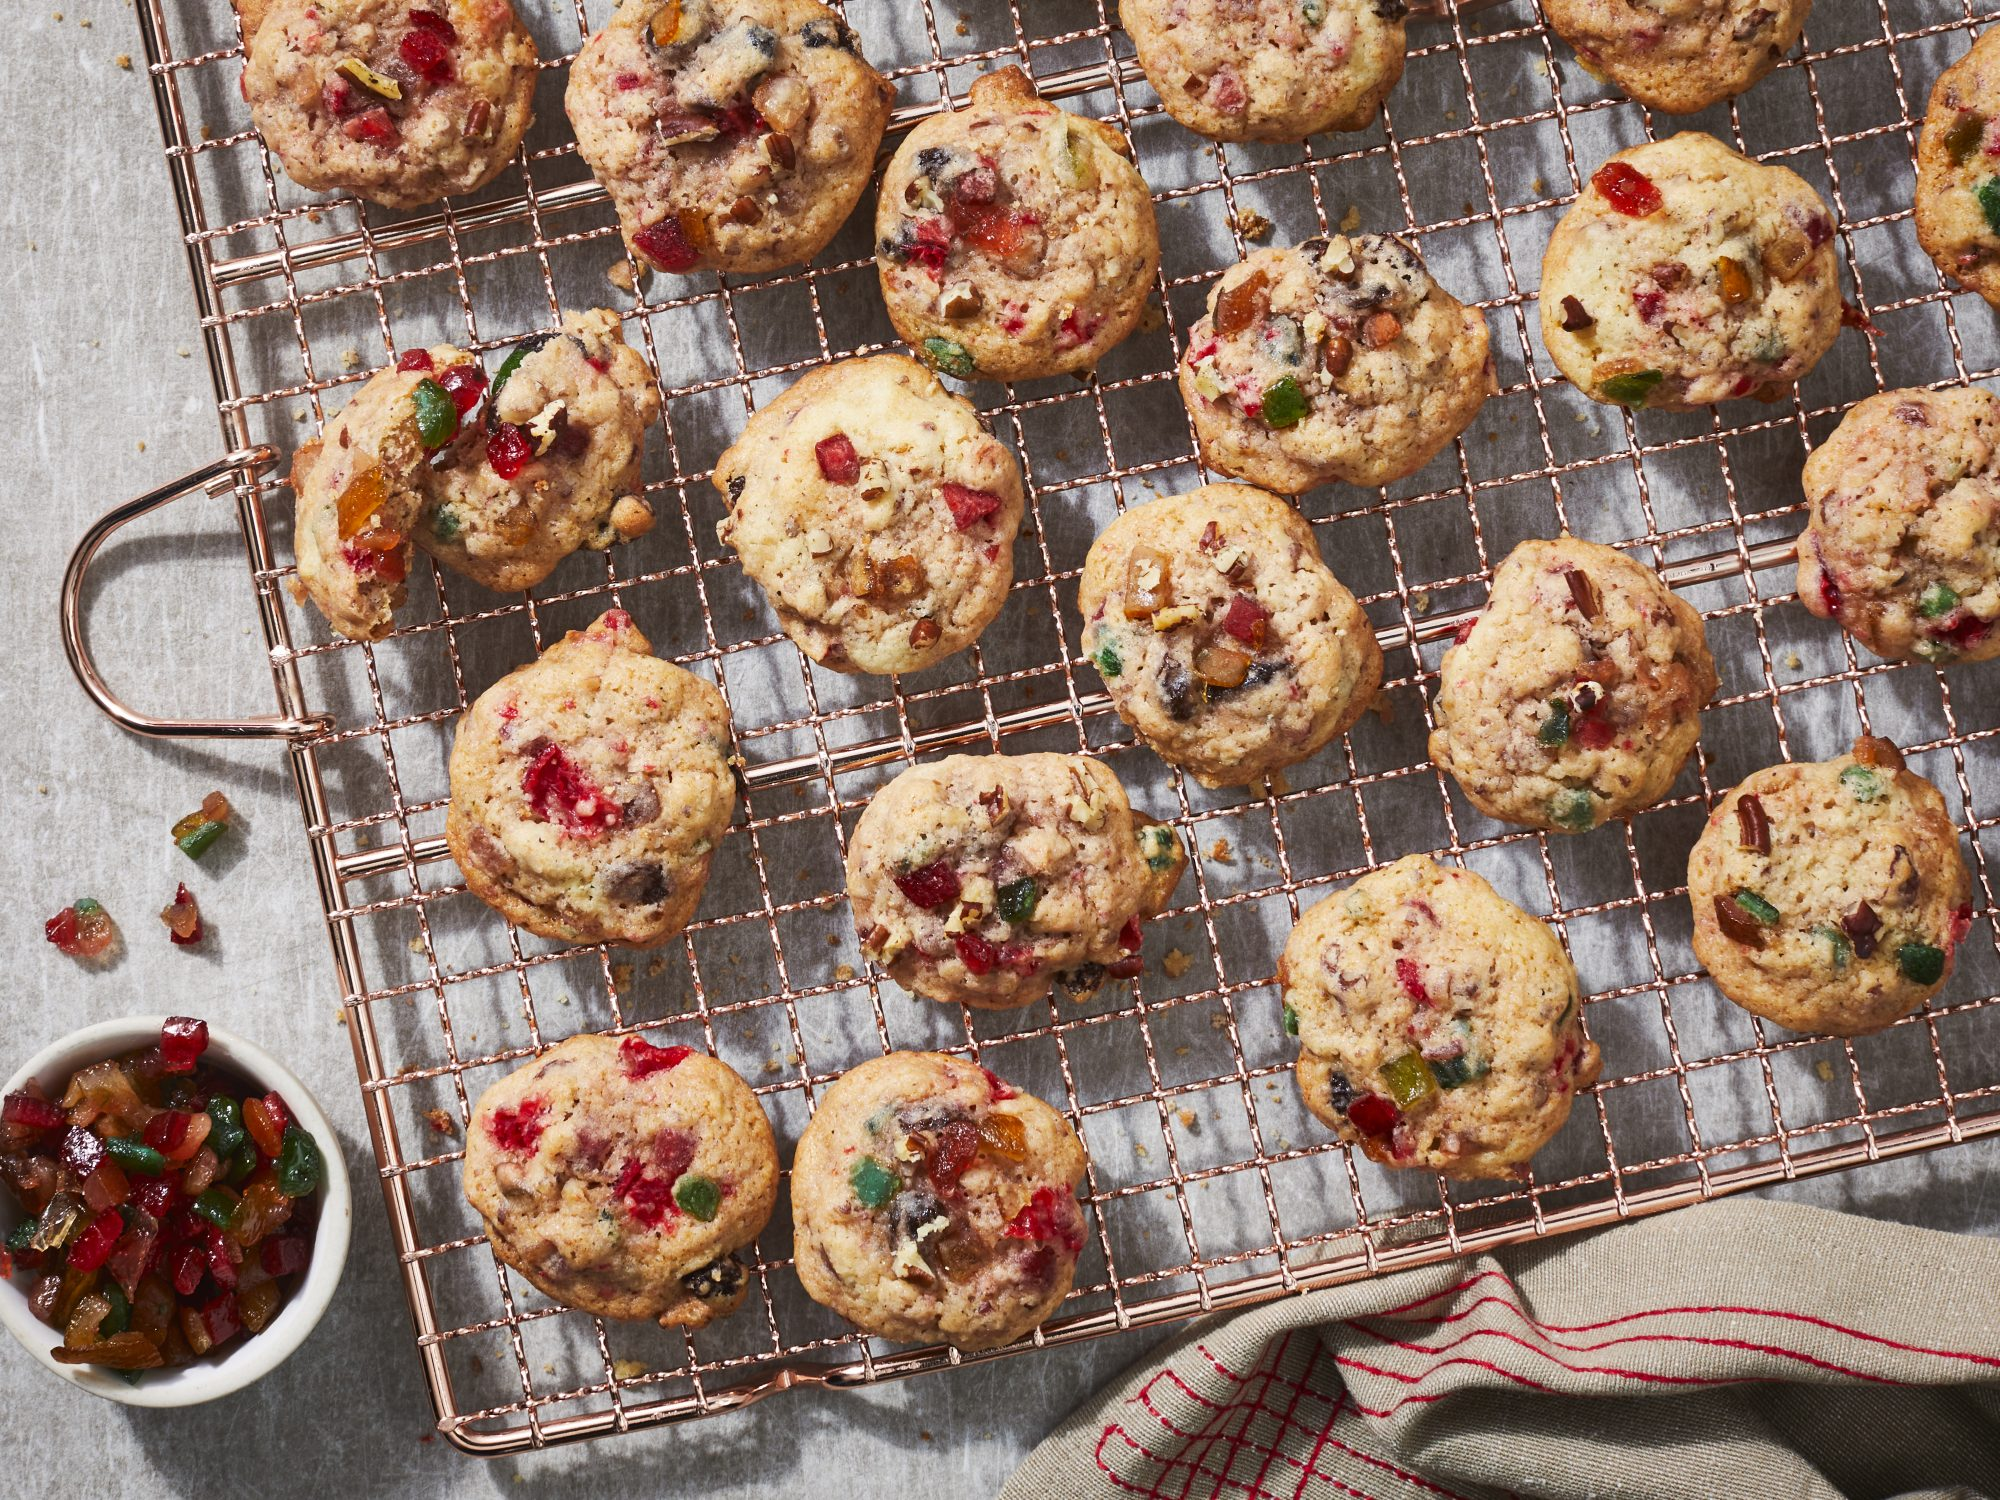 mr - Fruitcake Cookies Reshoot